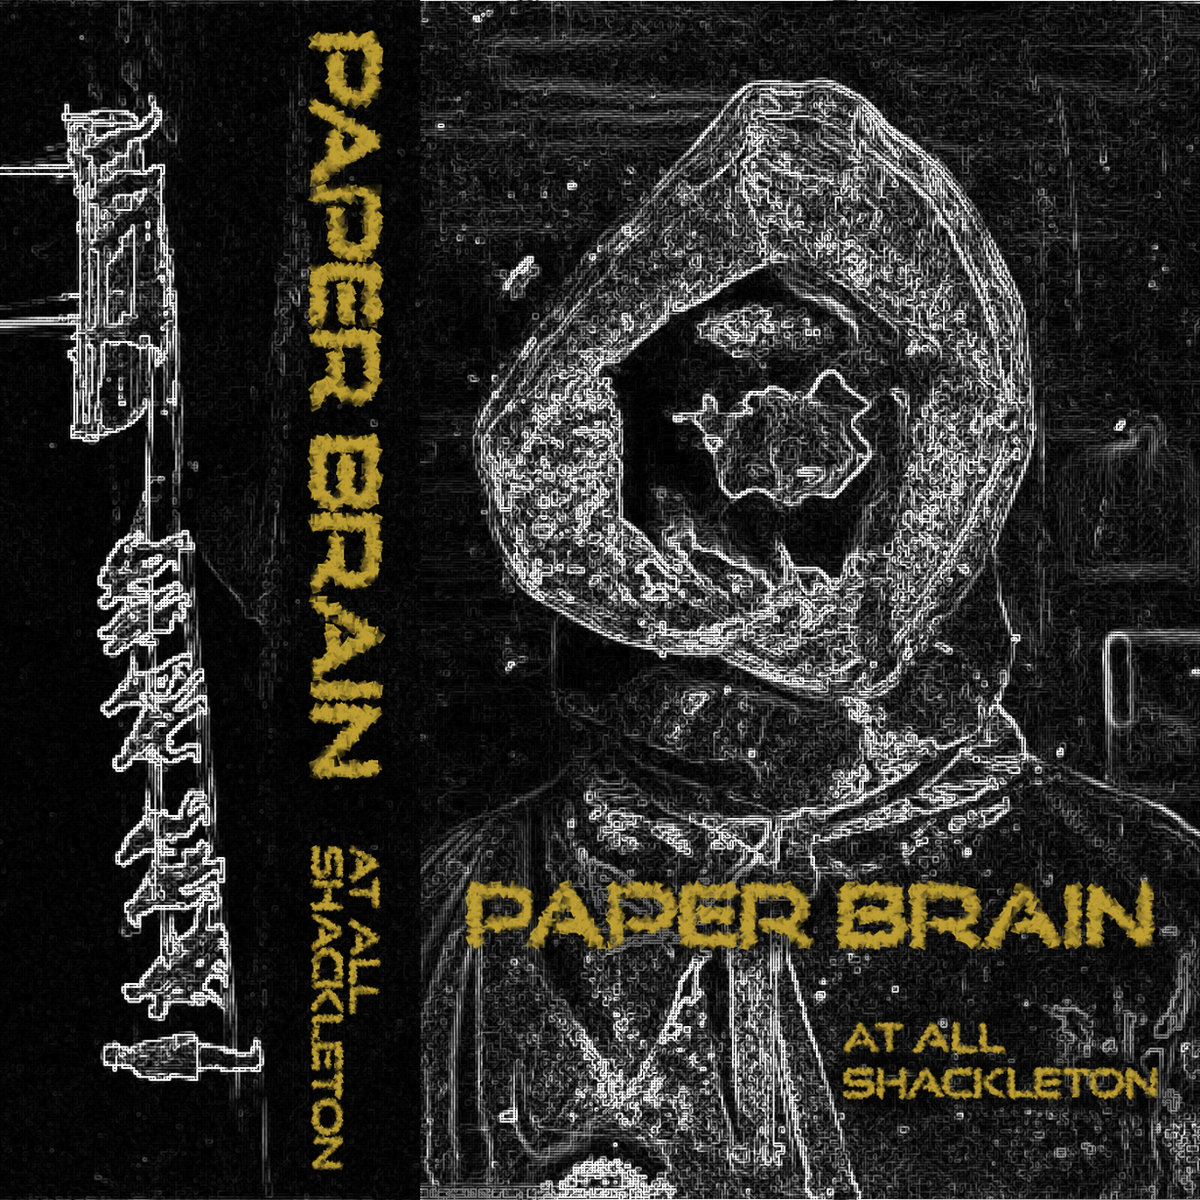 Jesse Powell You Mp3 Download: Paper Brain